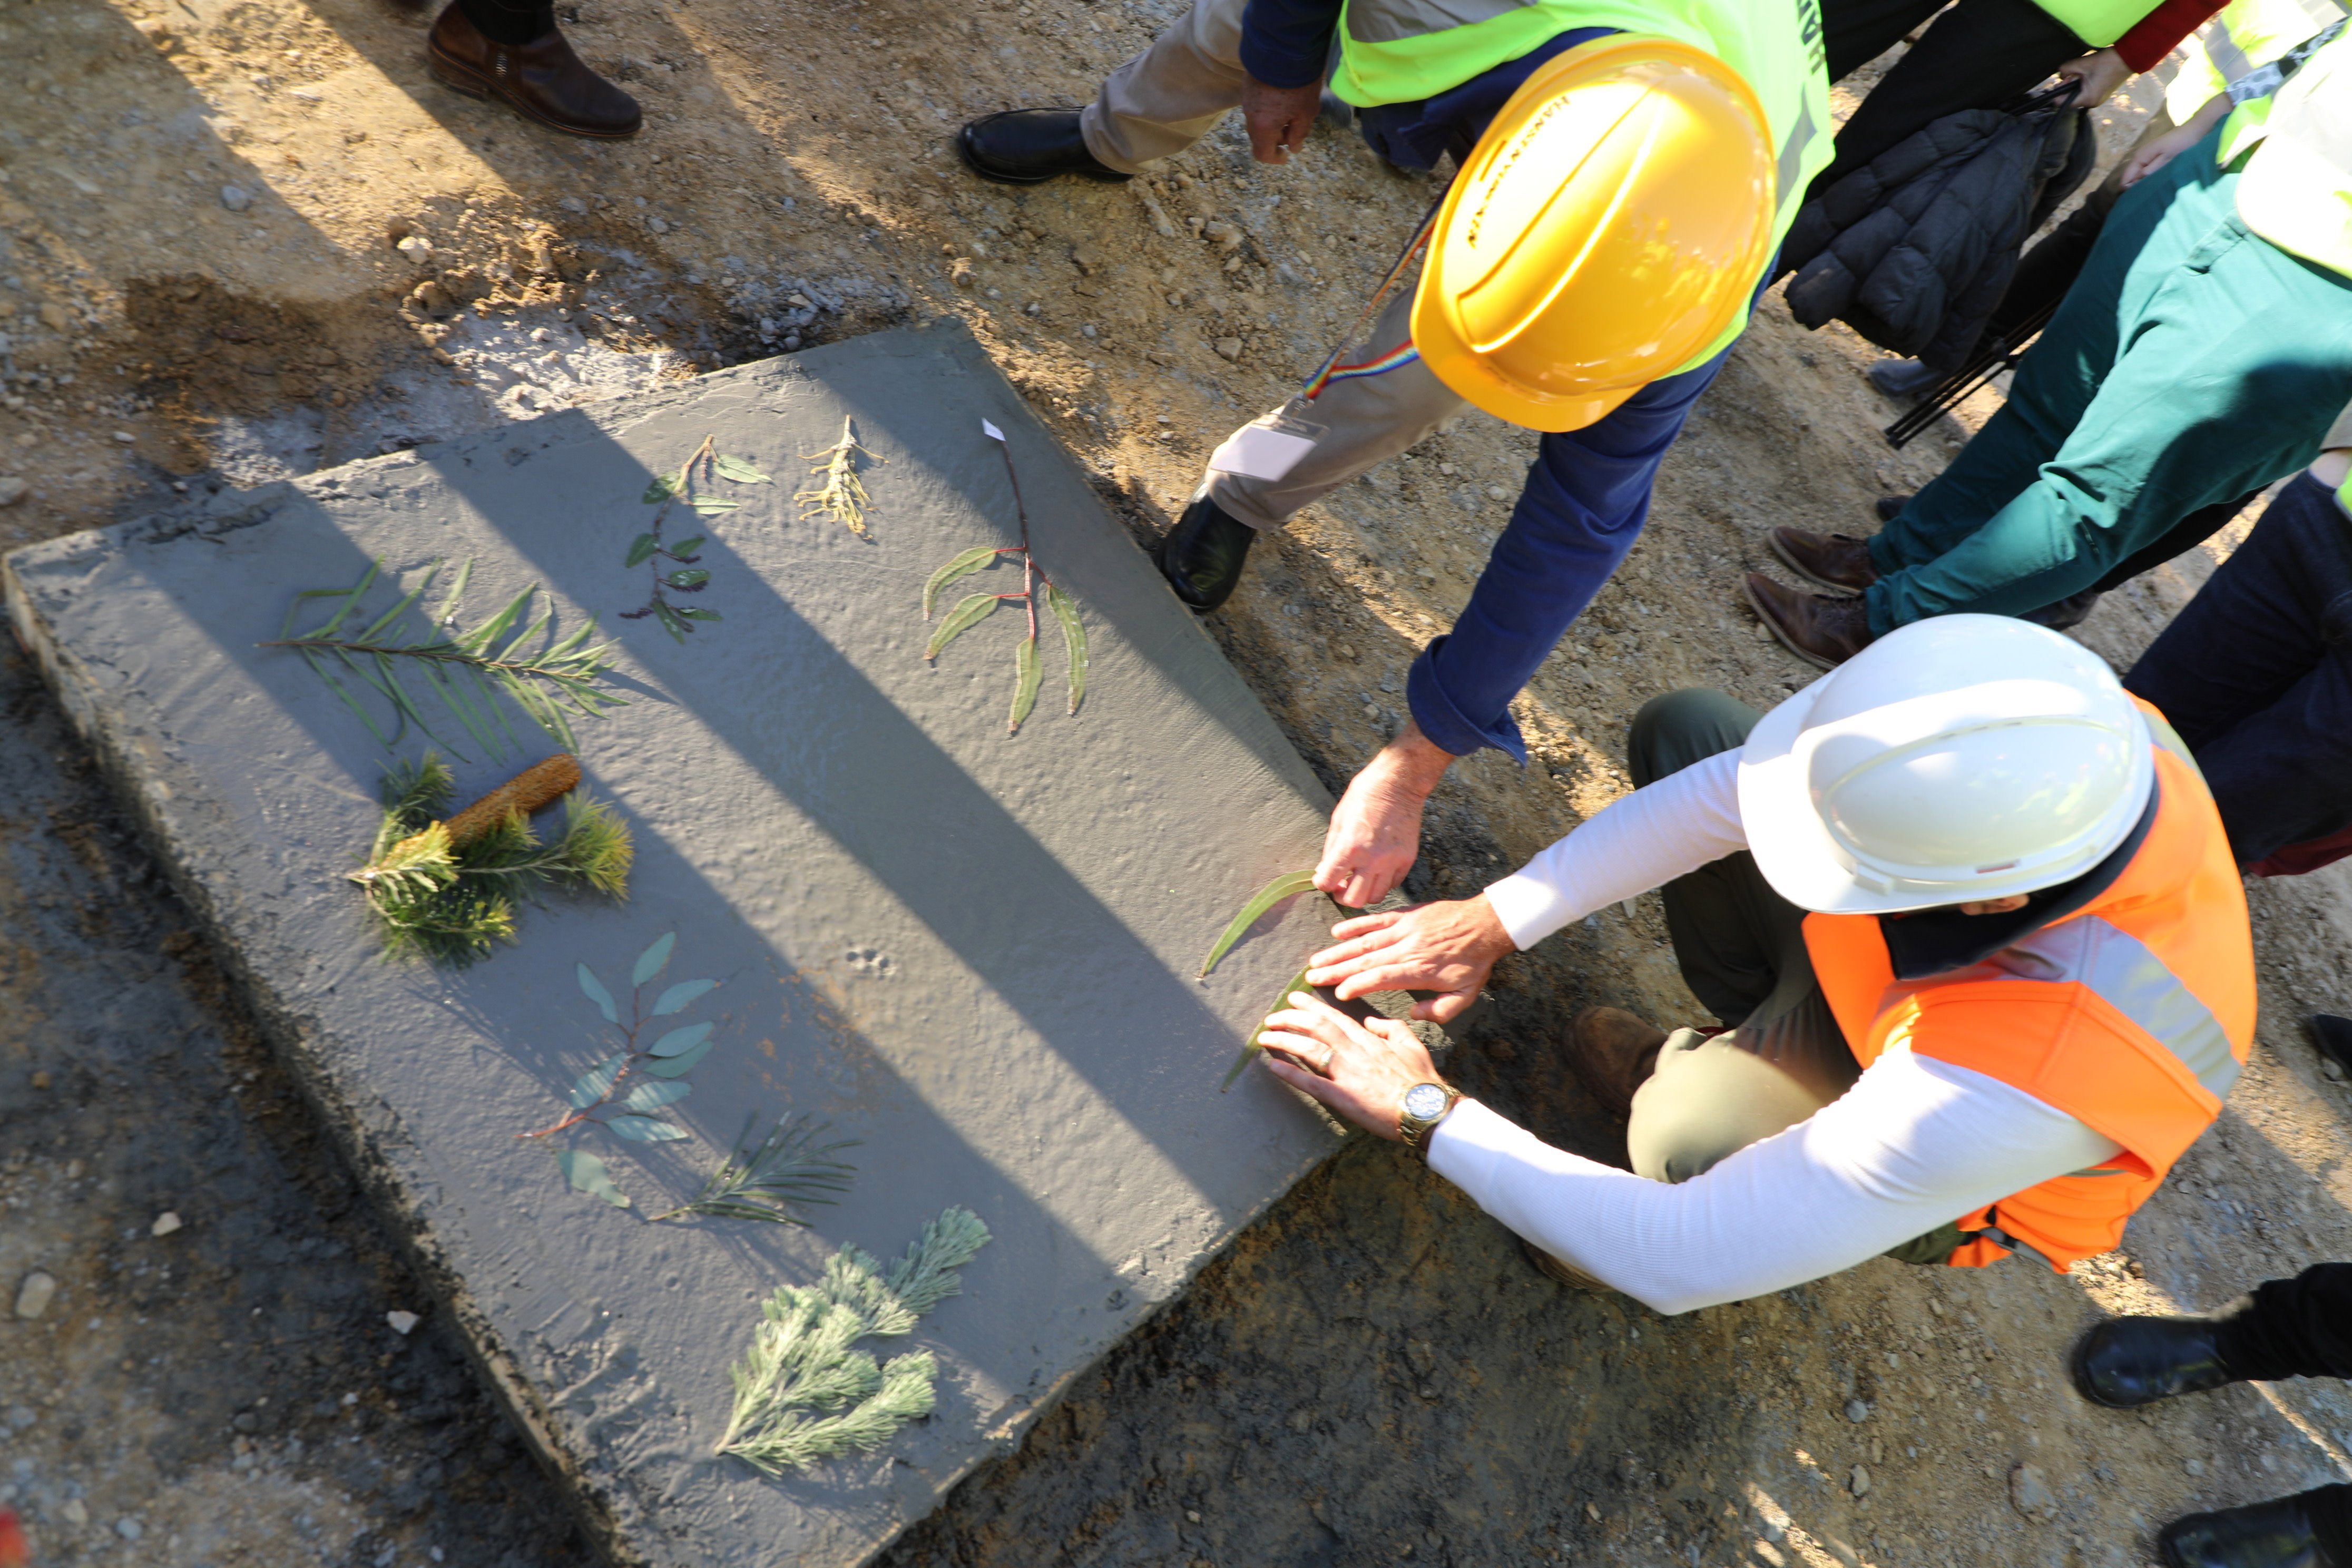 The cornerstone is marked with Native Plants